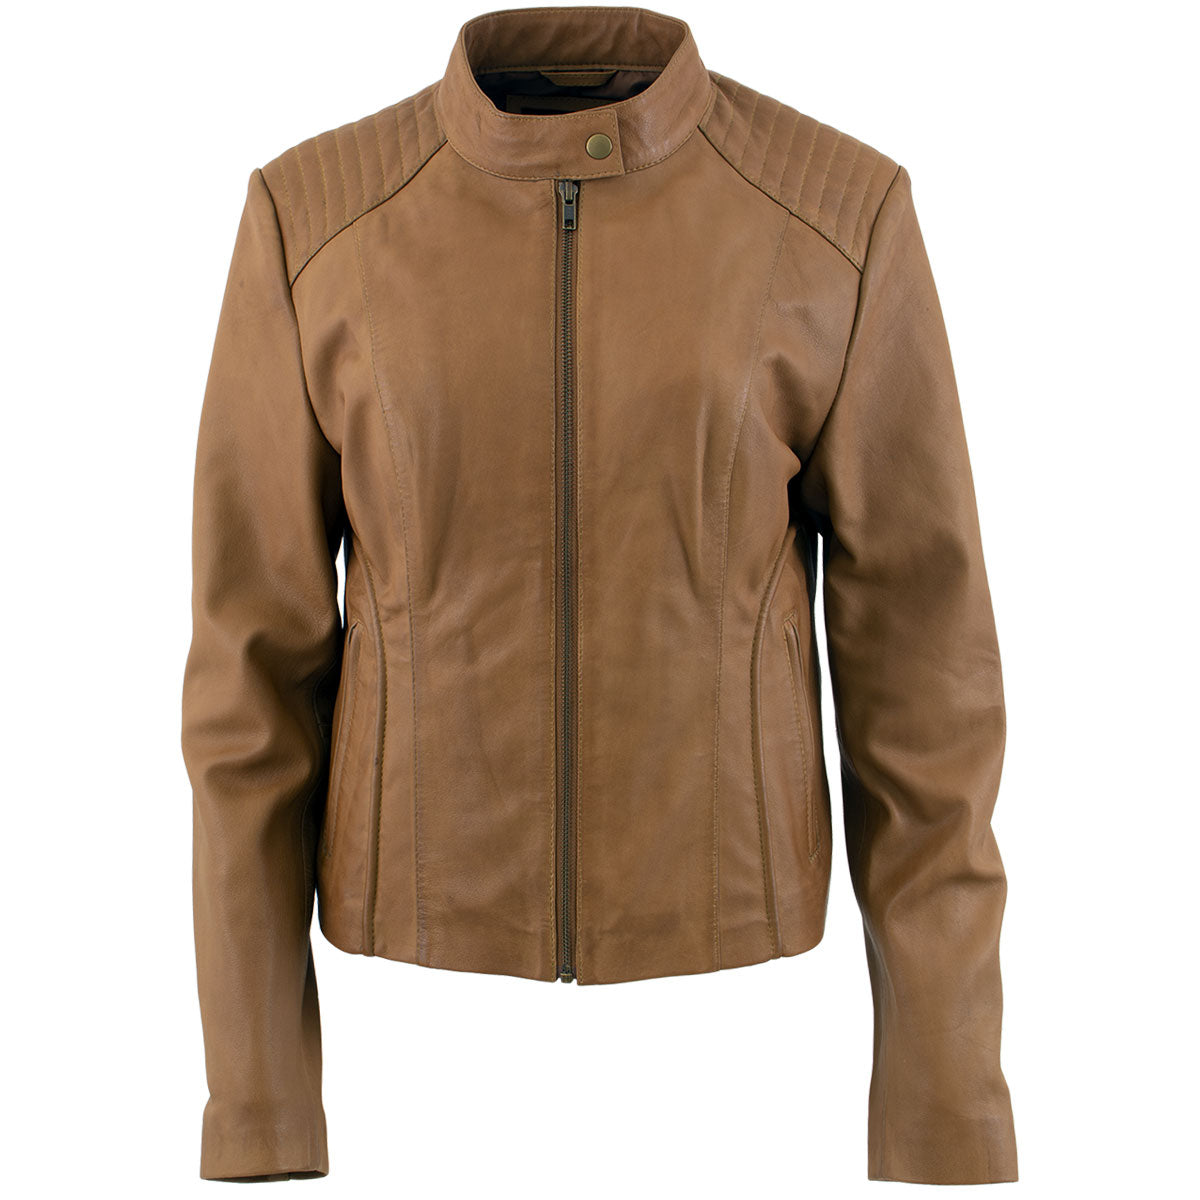 Xelement B91058 'Keeper' Ladies Cognac Leather Scuba Style Jacket with